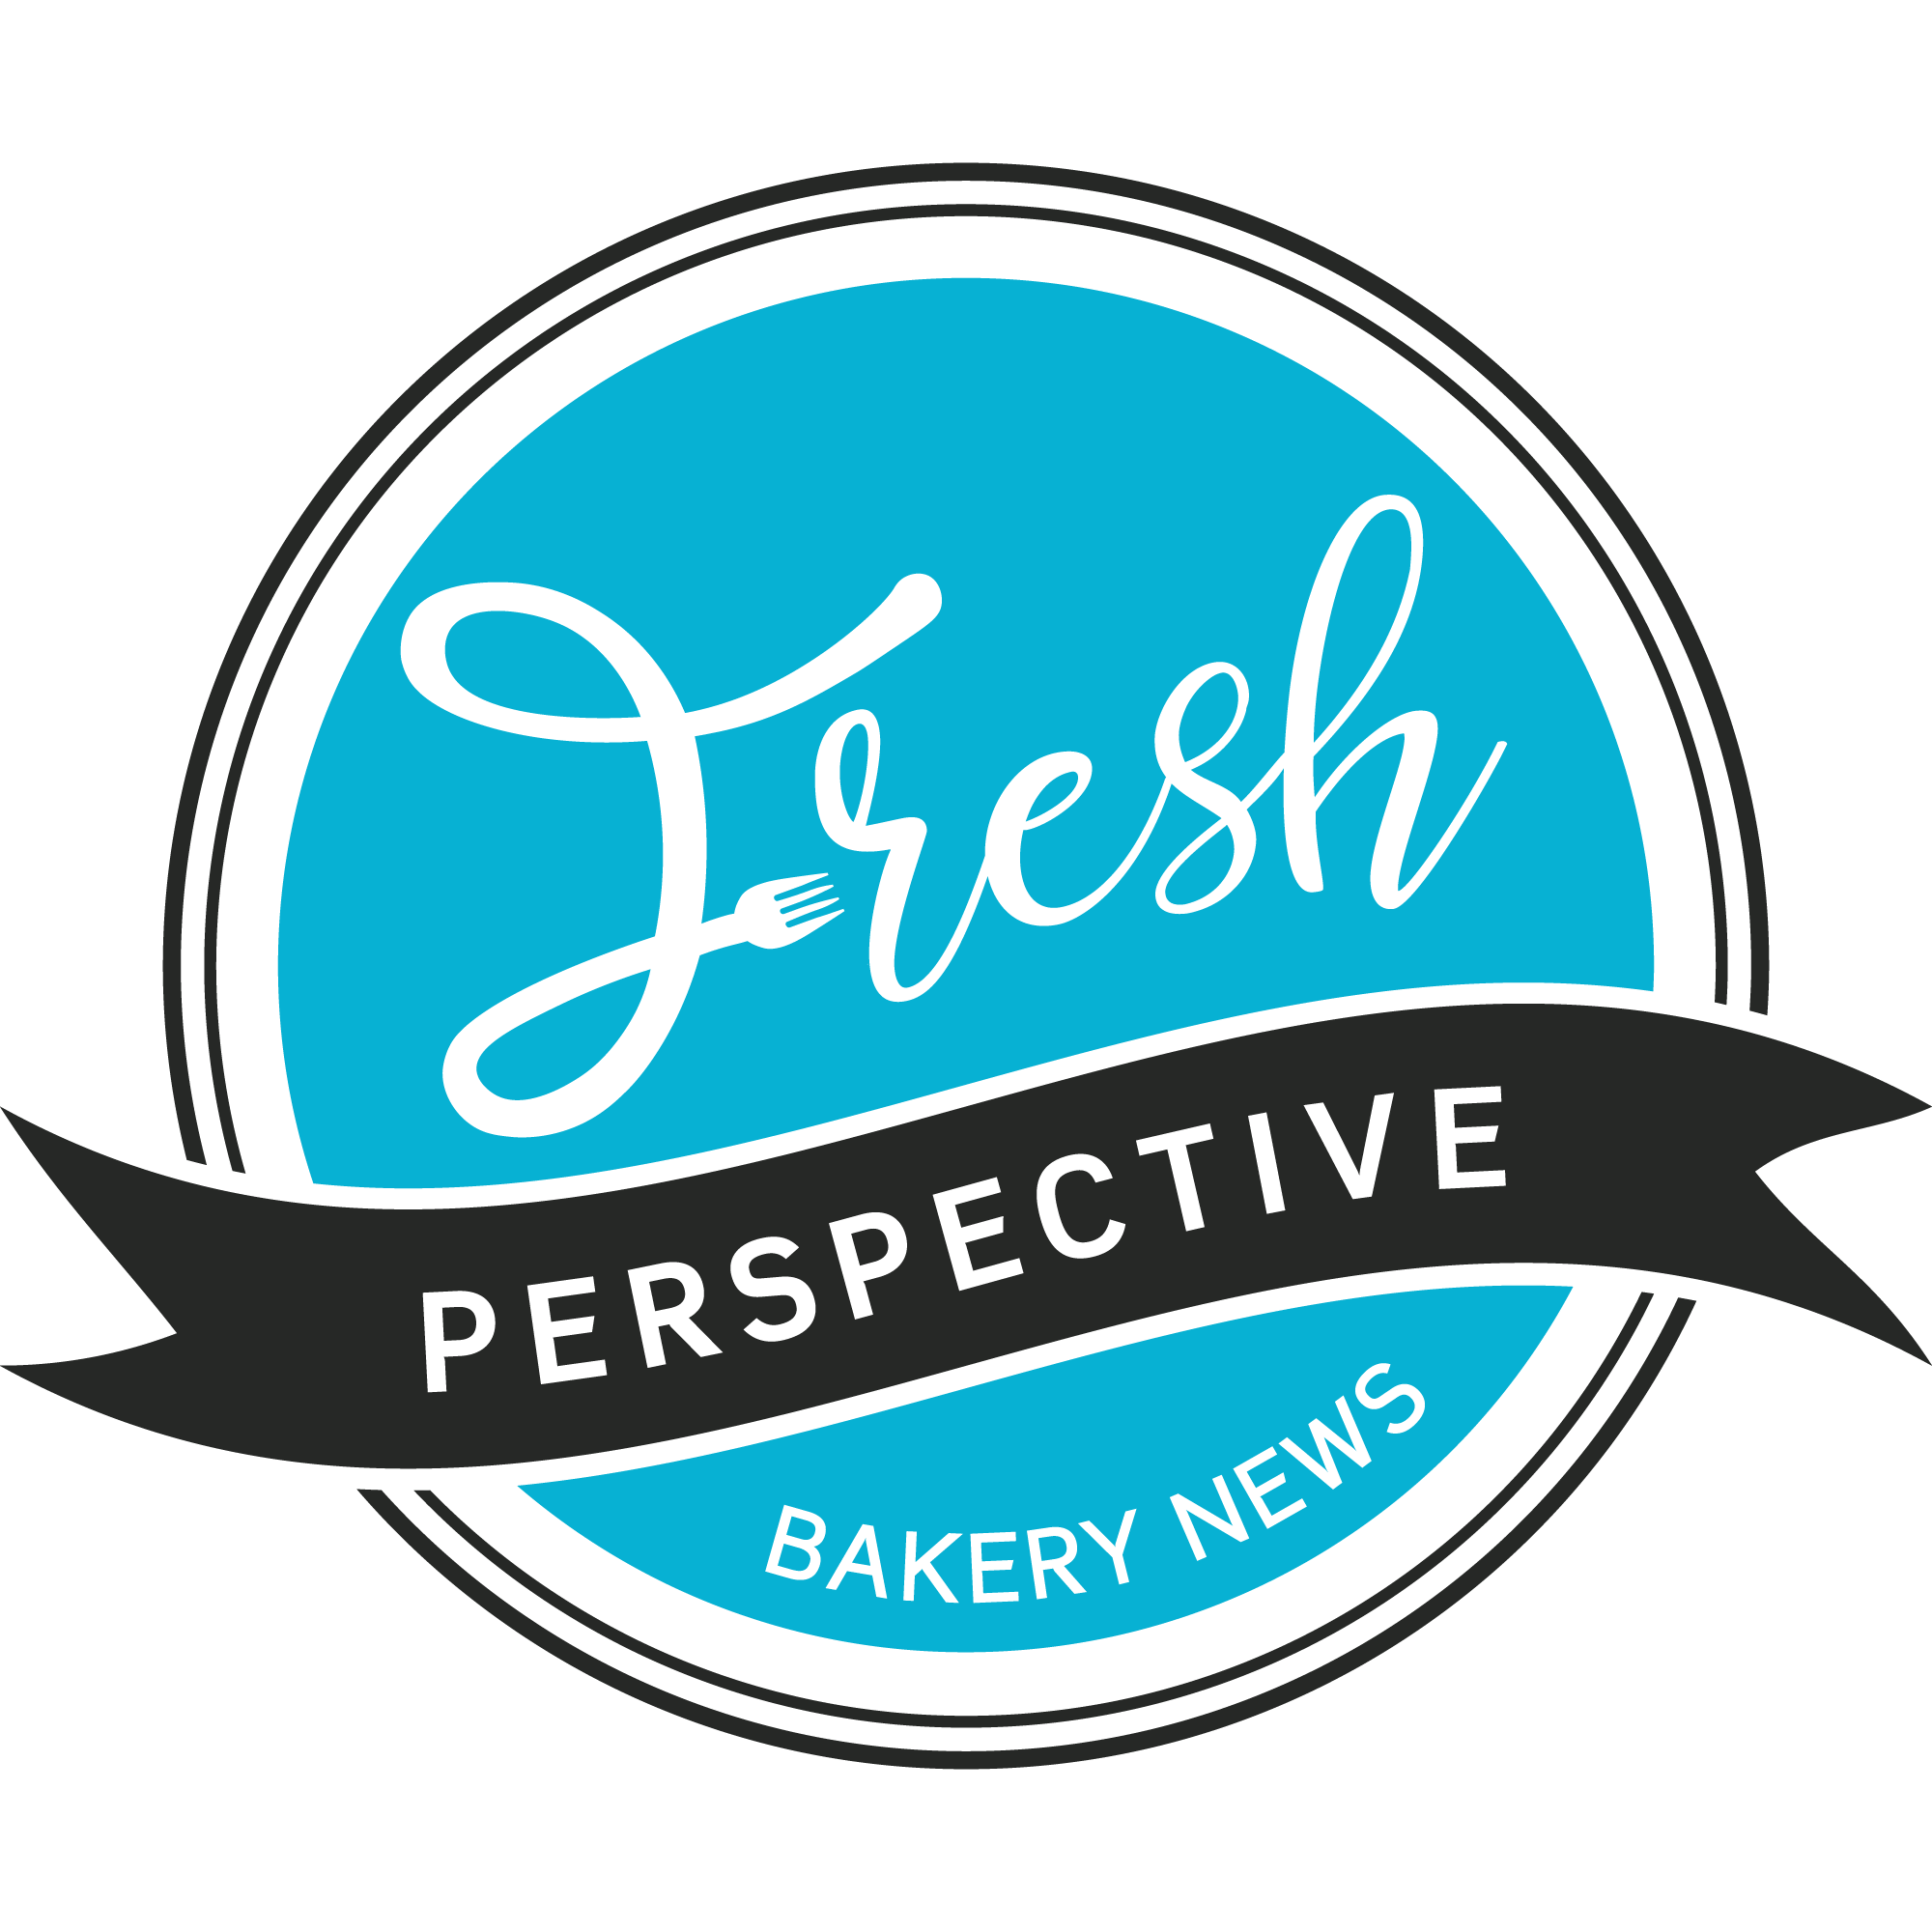 Logo - News Channel about Food News